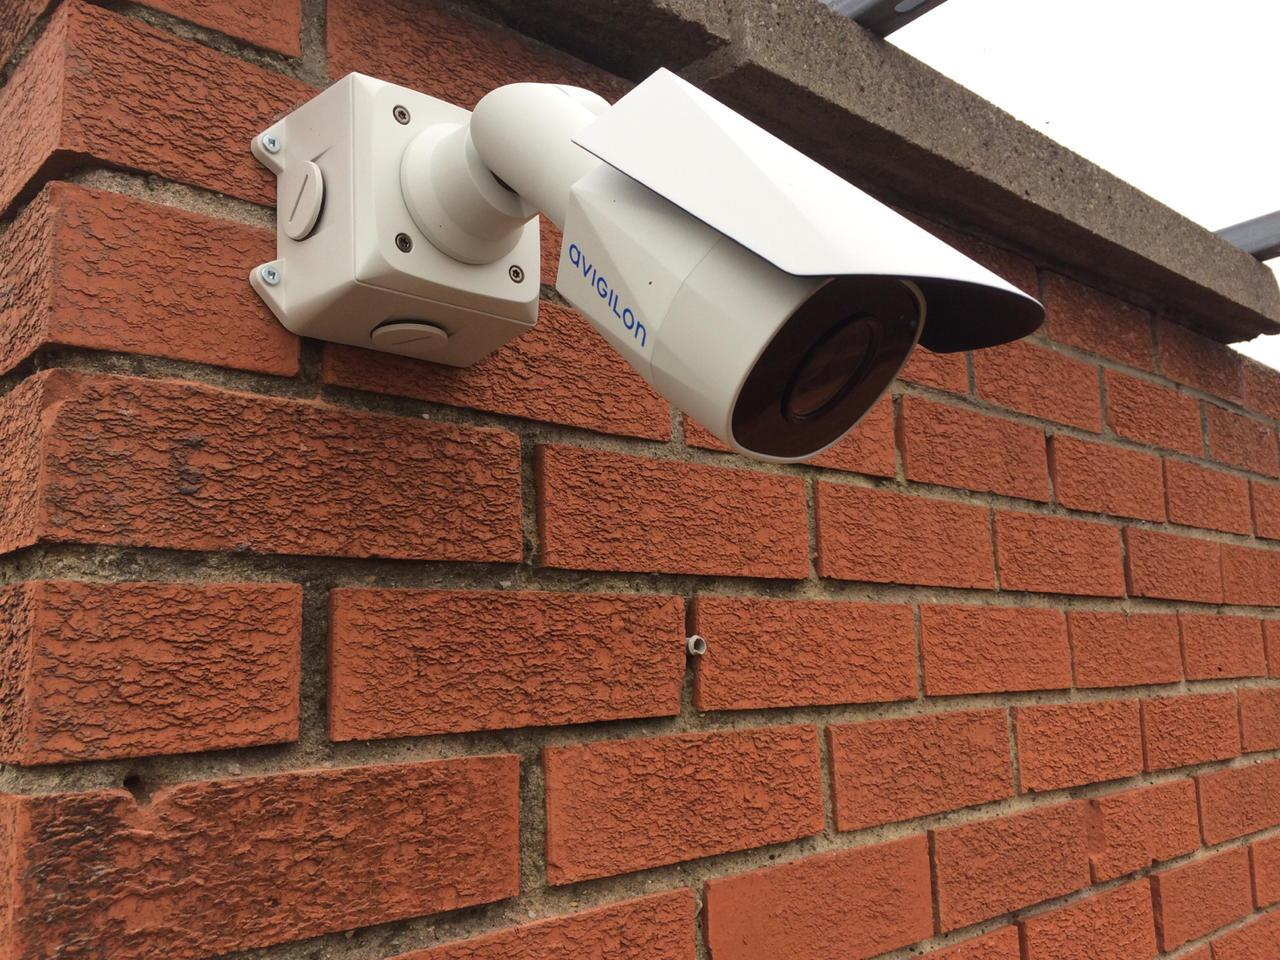 Avigilon high definition CCTV fitted by Usee.ie